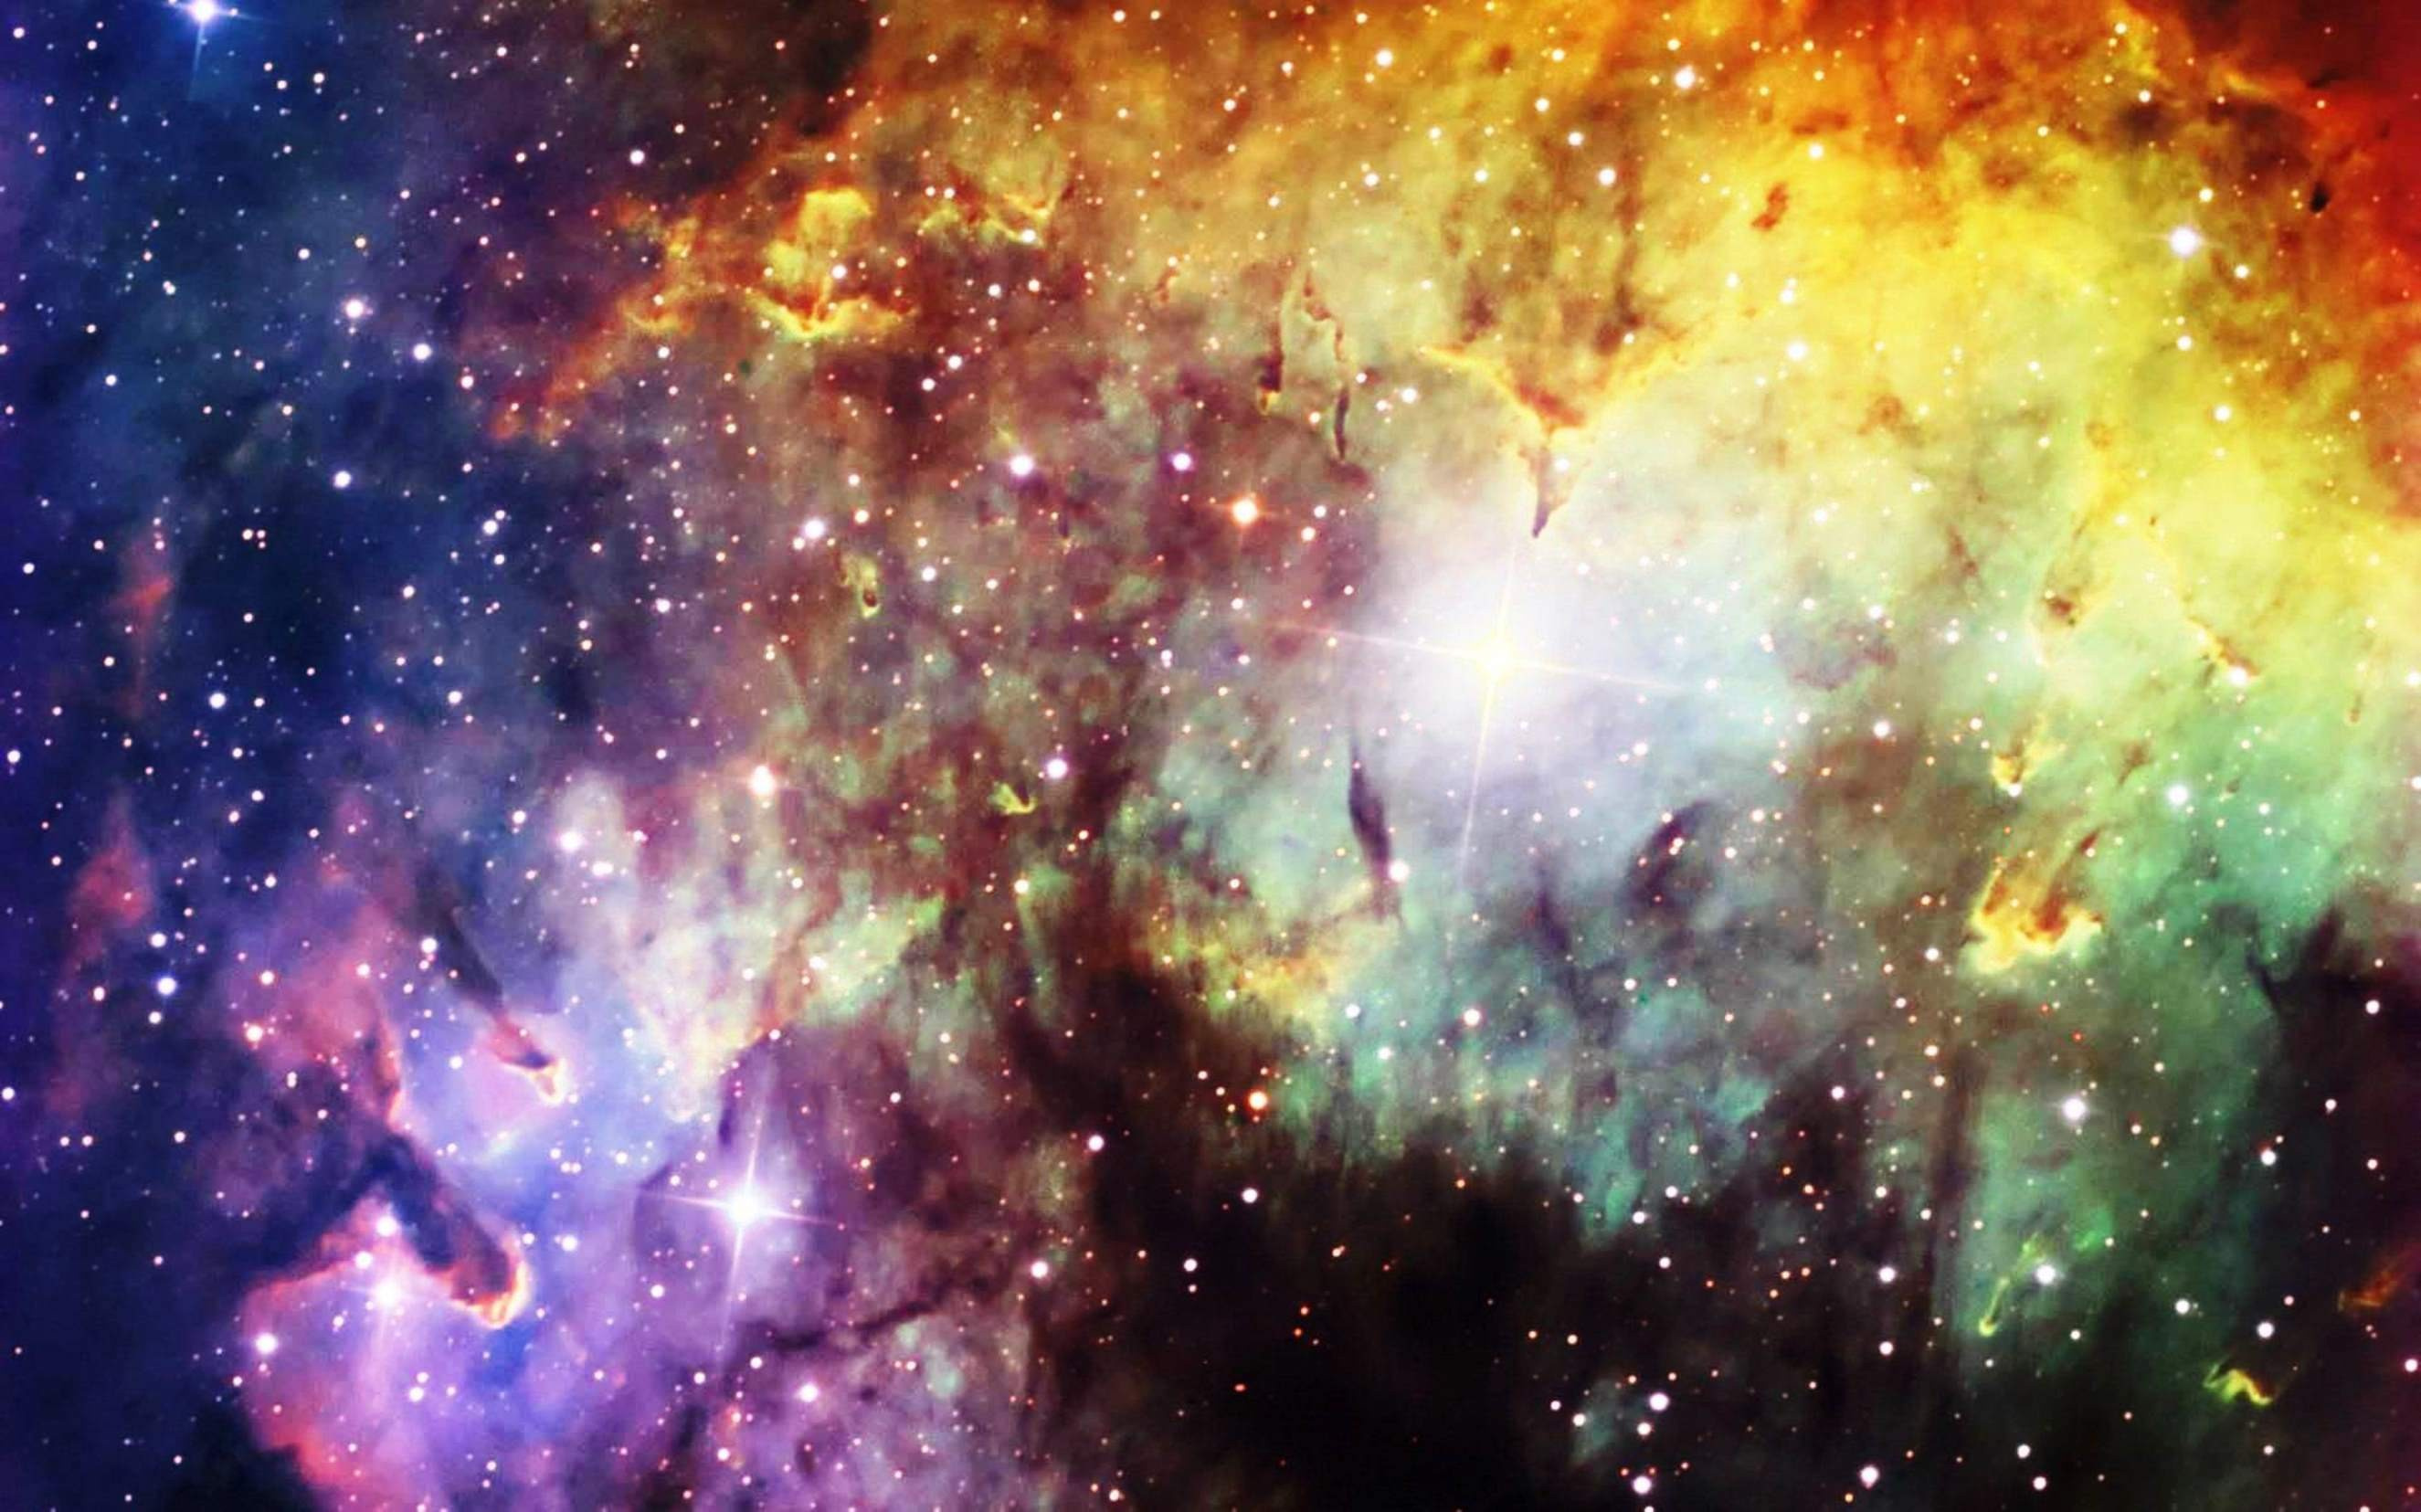 Galaxy background tumblr download free beautiful - Colorful galaxy wallpaper ...